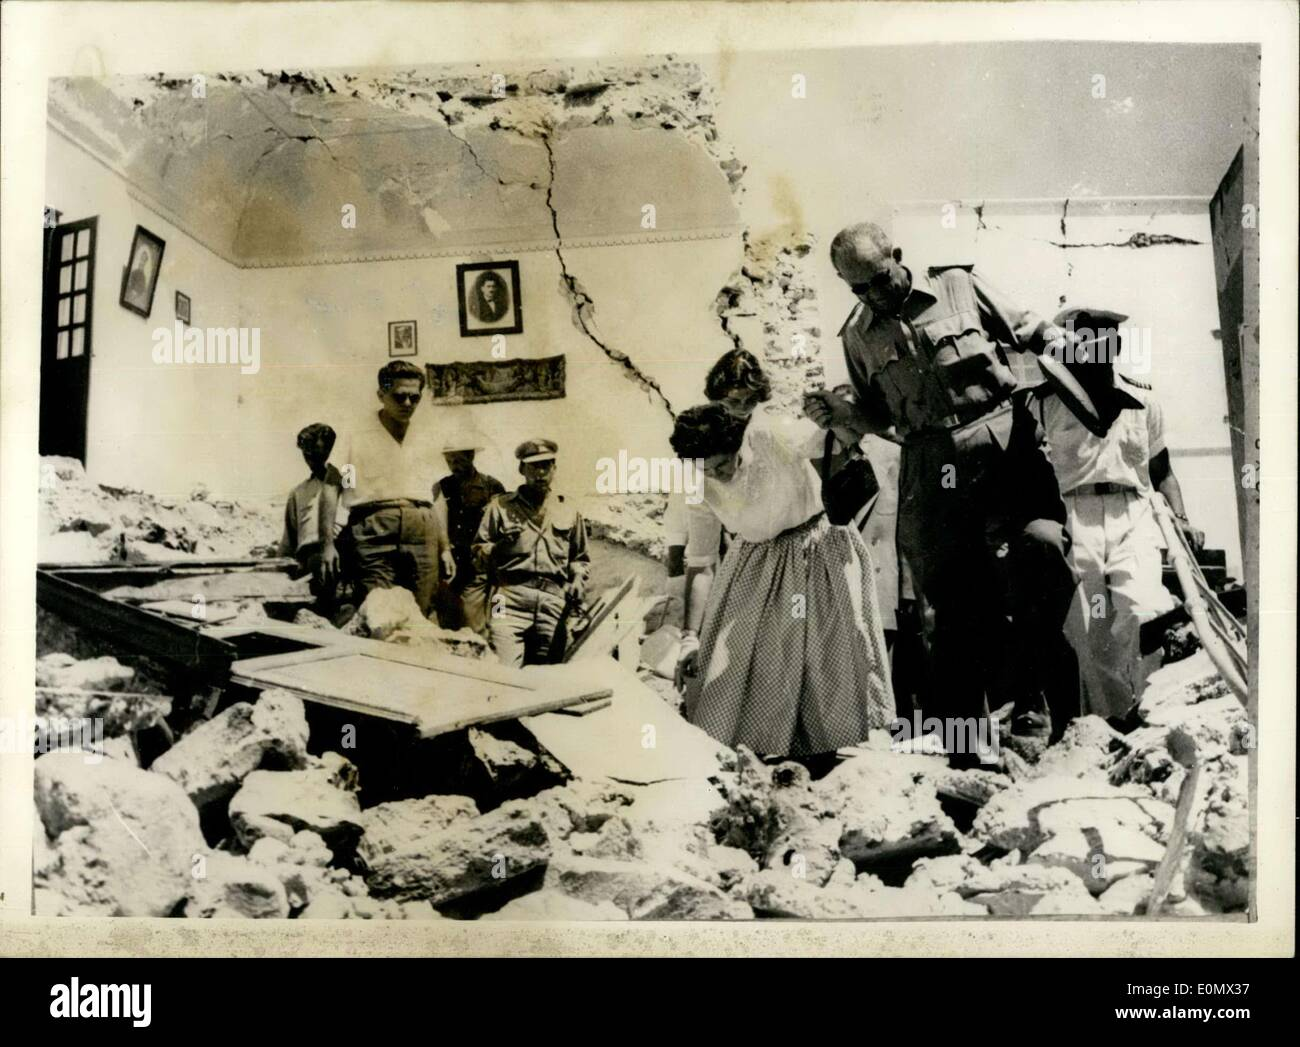 Jul. 16, 1956 - King and Queen of Greece visit Earthquake-hit islands.: Photo shows King Paul of Greece assists Stock Photo